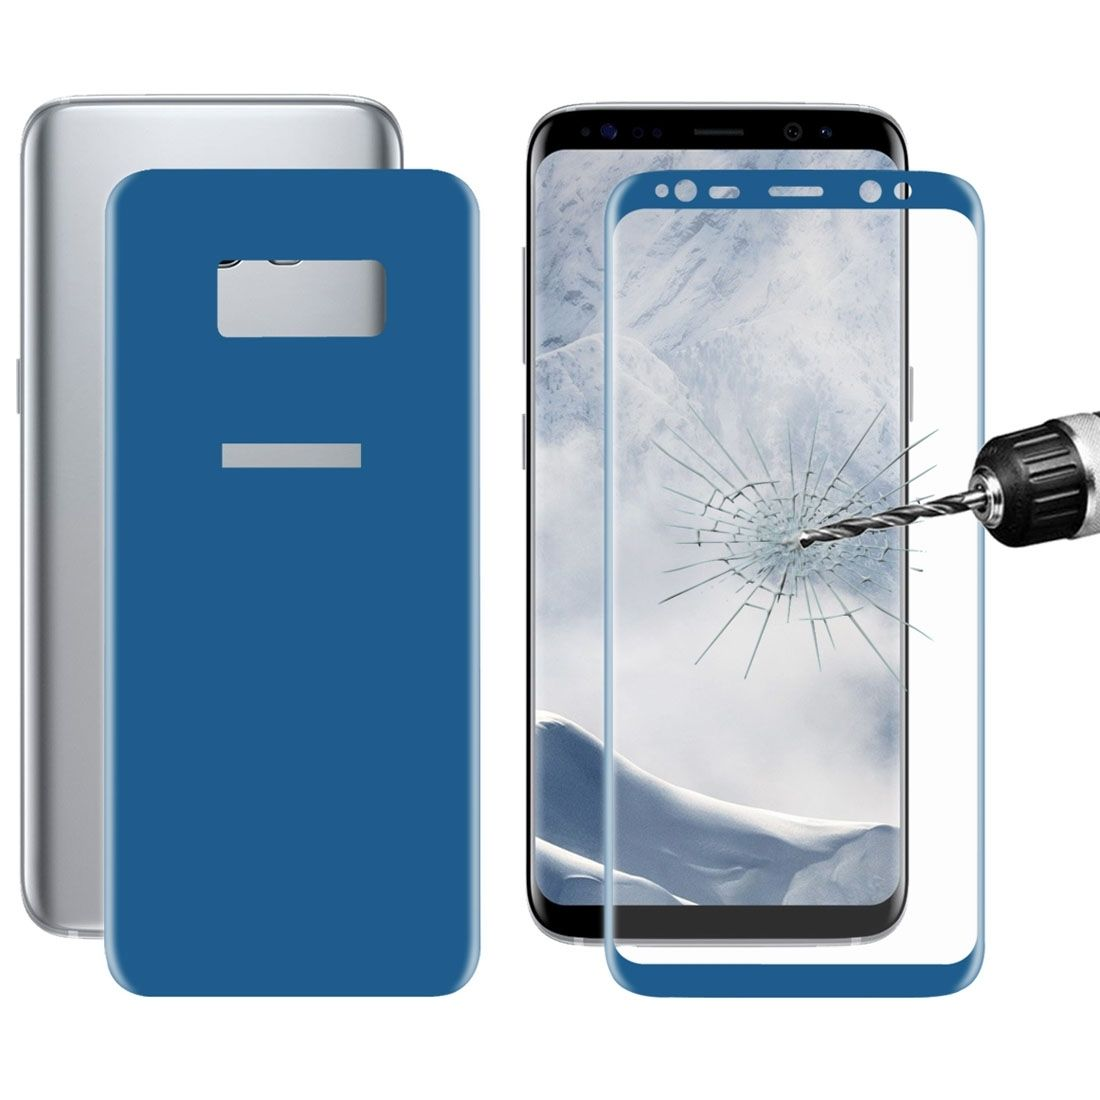 ... Front + Back For Samsung Galaxy S8+ / G9550 0.26mm 9H Surface Hardness 3D Curved Full Screen Bent Tempered Glass Color Screen Protector(Dark Blue)